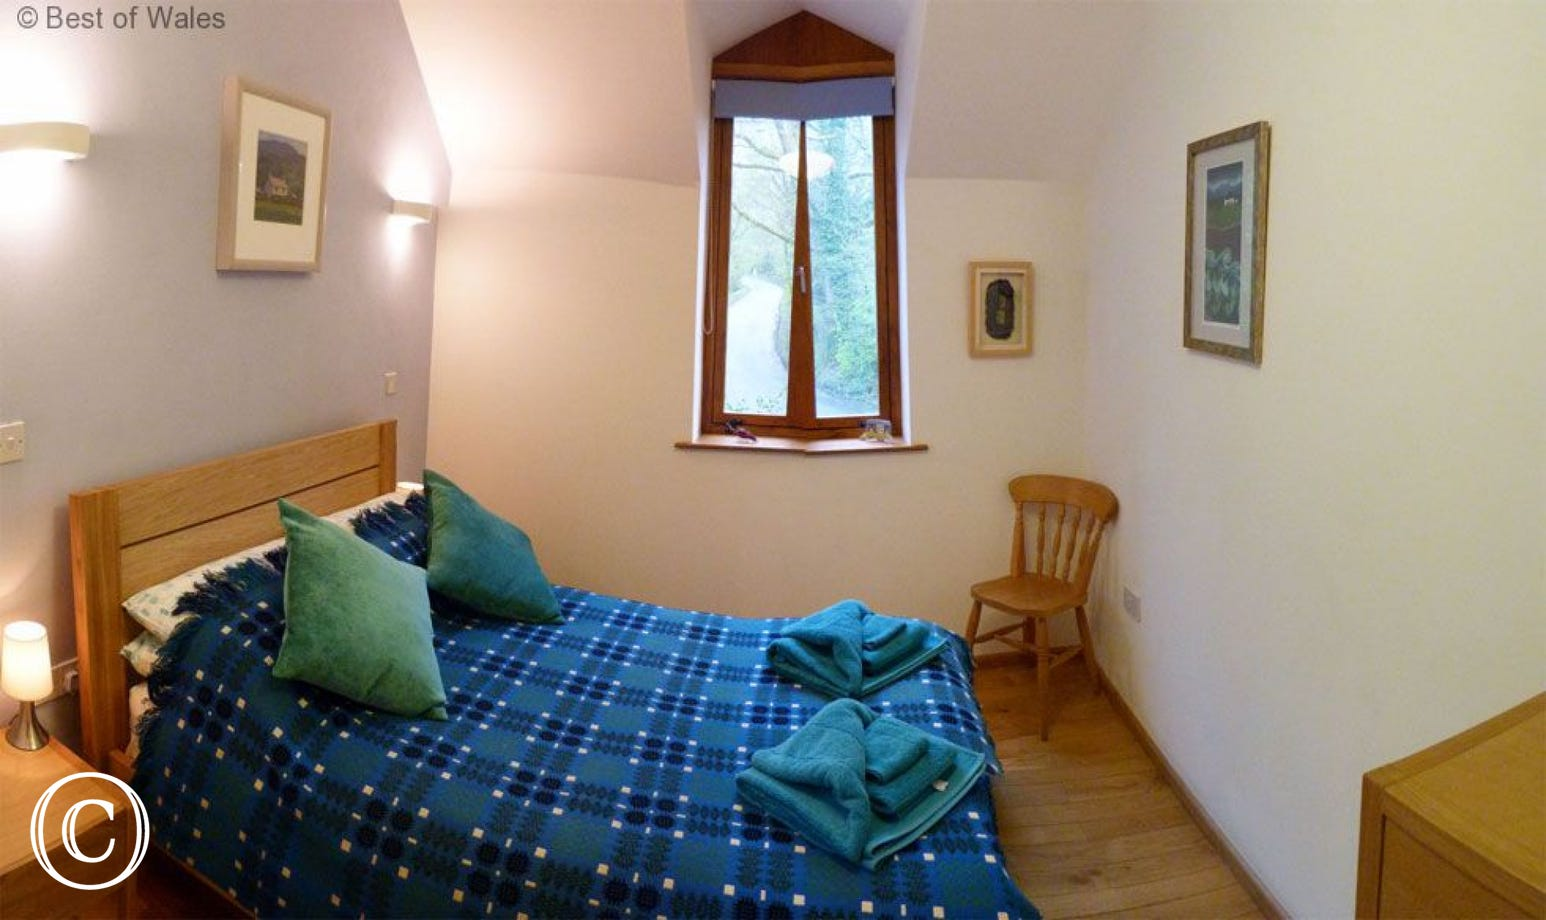 Brecon Beacons accommodation with ensuite master bedroom